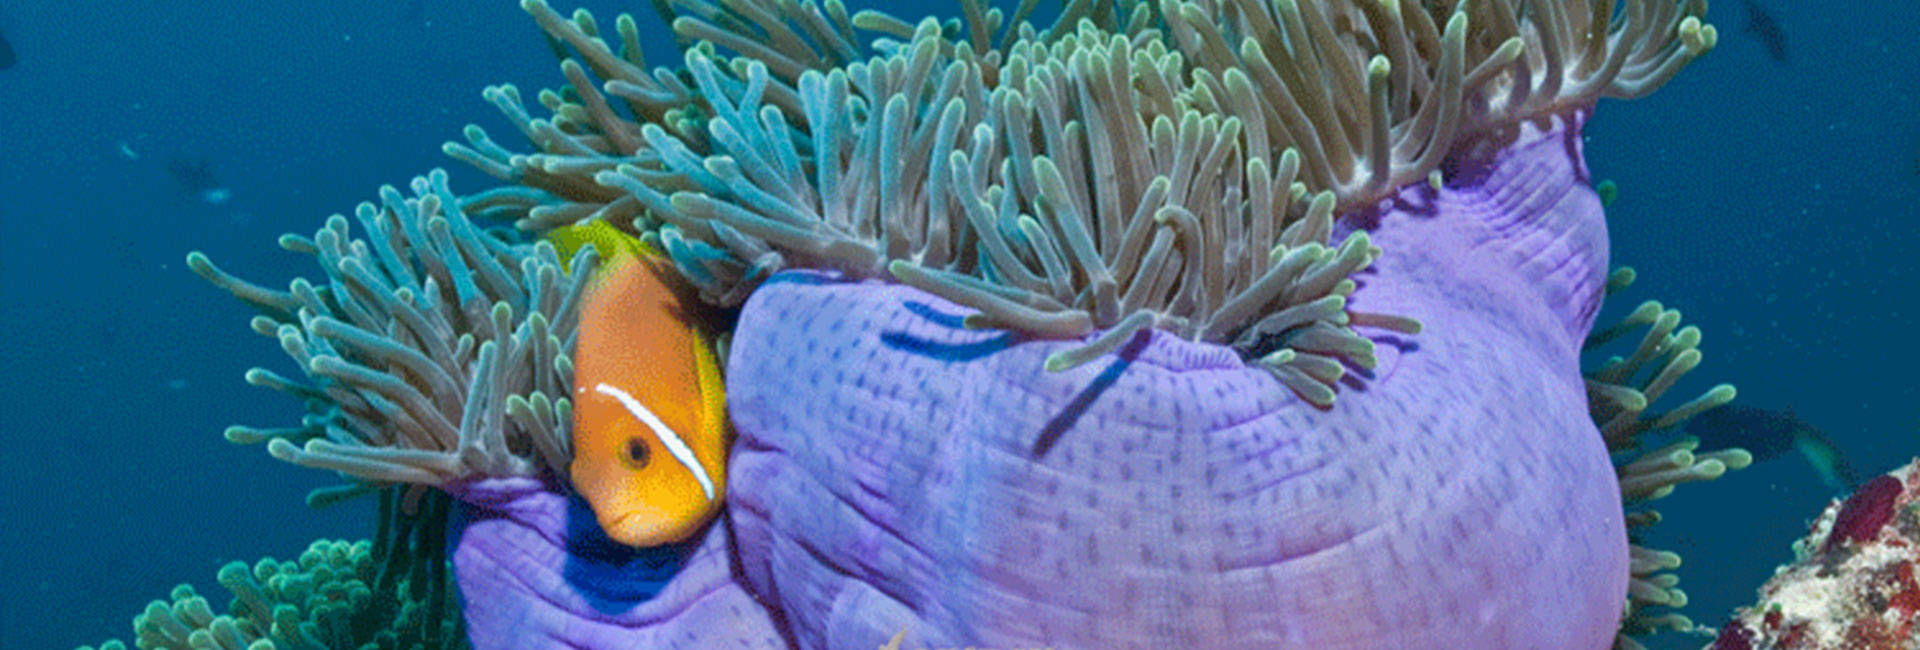 clown-fish-with-anemone